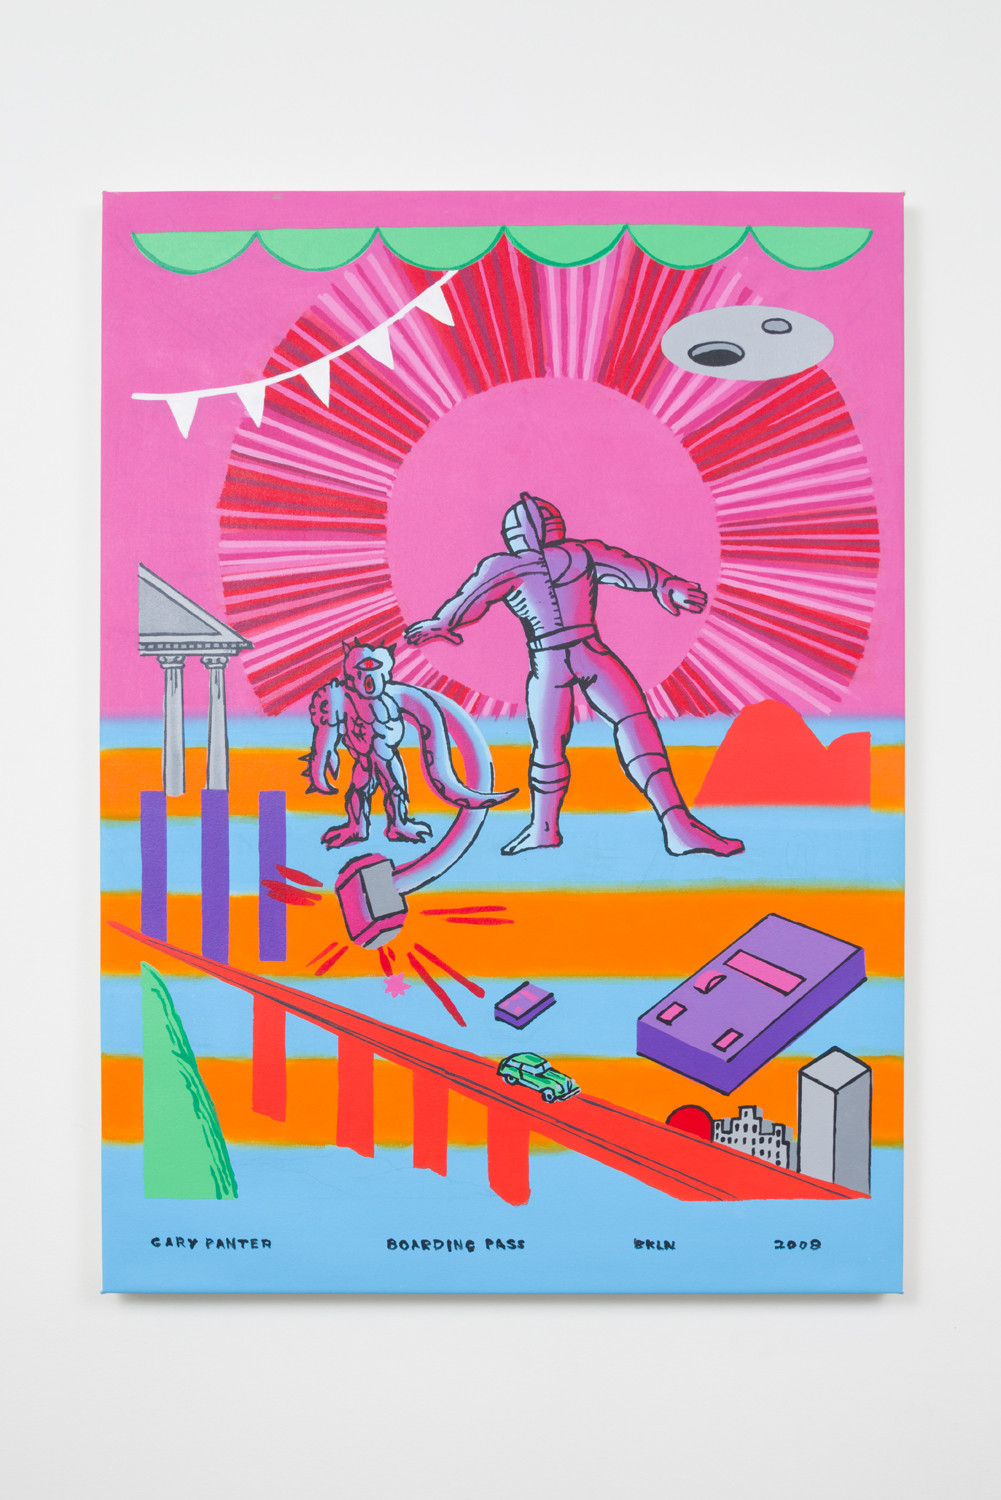 """Gary Panter's """"Boarding Pass,"""" 2008, acrylic on canvas, 48.5 inches by 35.5 inches"""